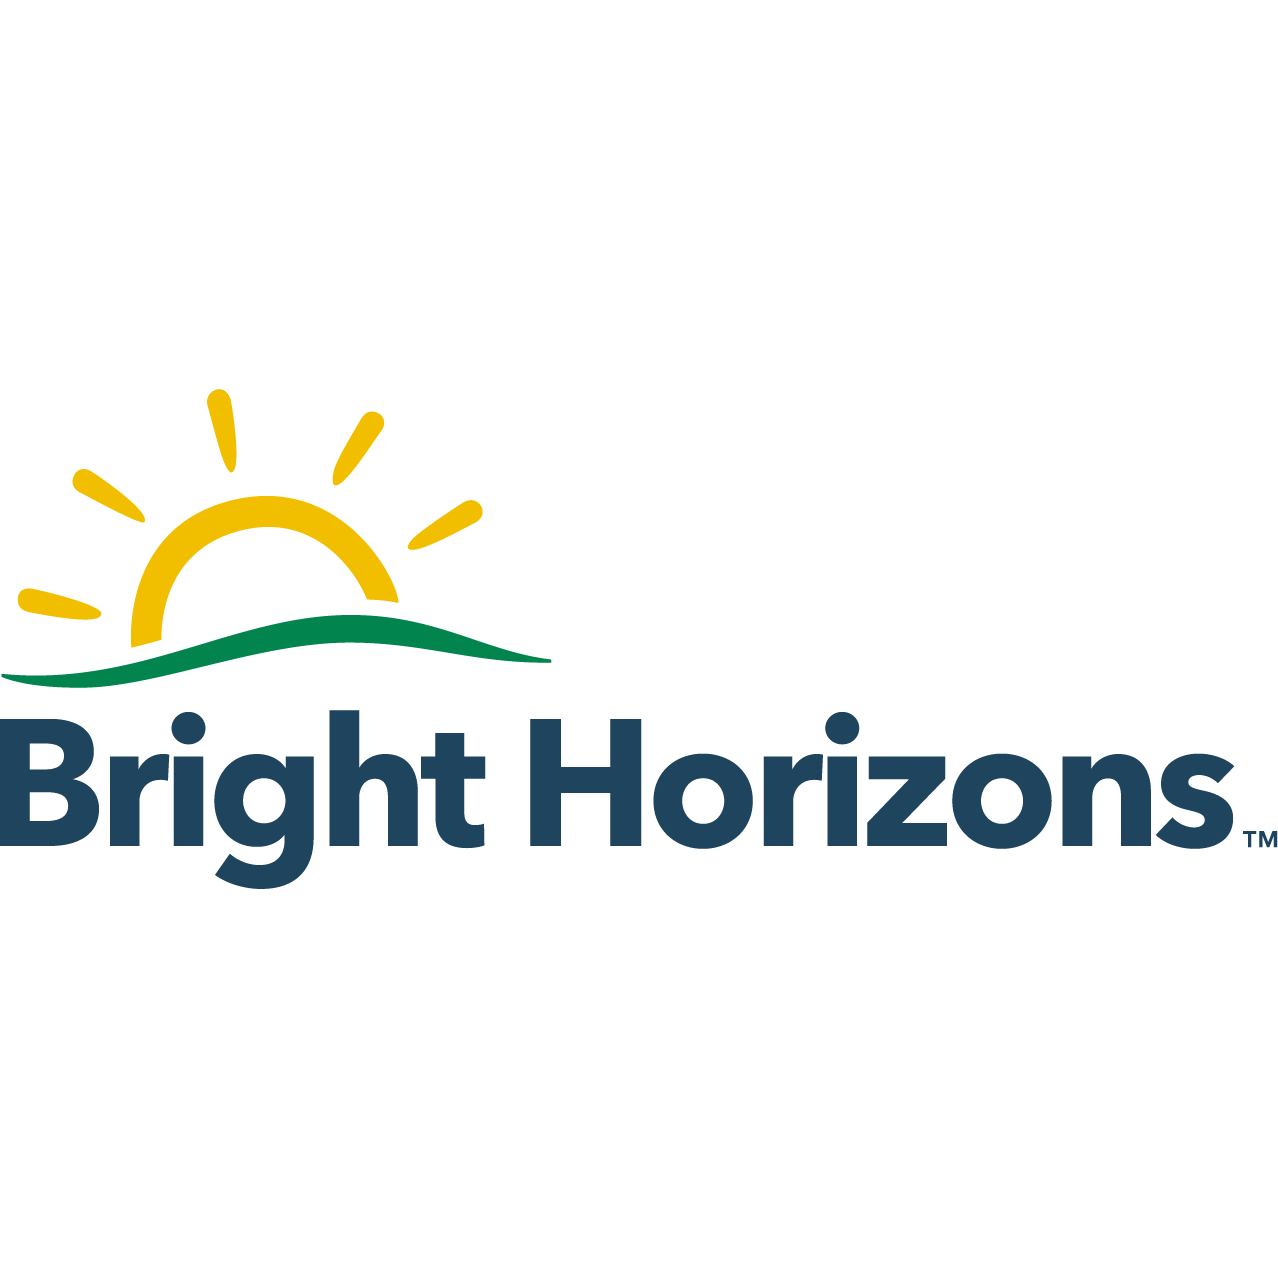 Bright Horizons Watford Day Nursery and Preschool - Watford, Hertfordshire WD18 7QR - 03339 208876 | ShowMeLocal.com